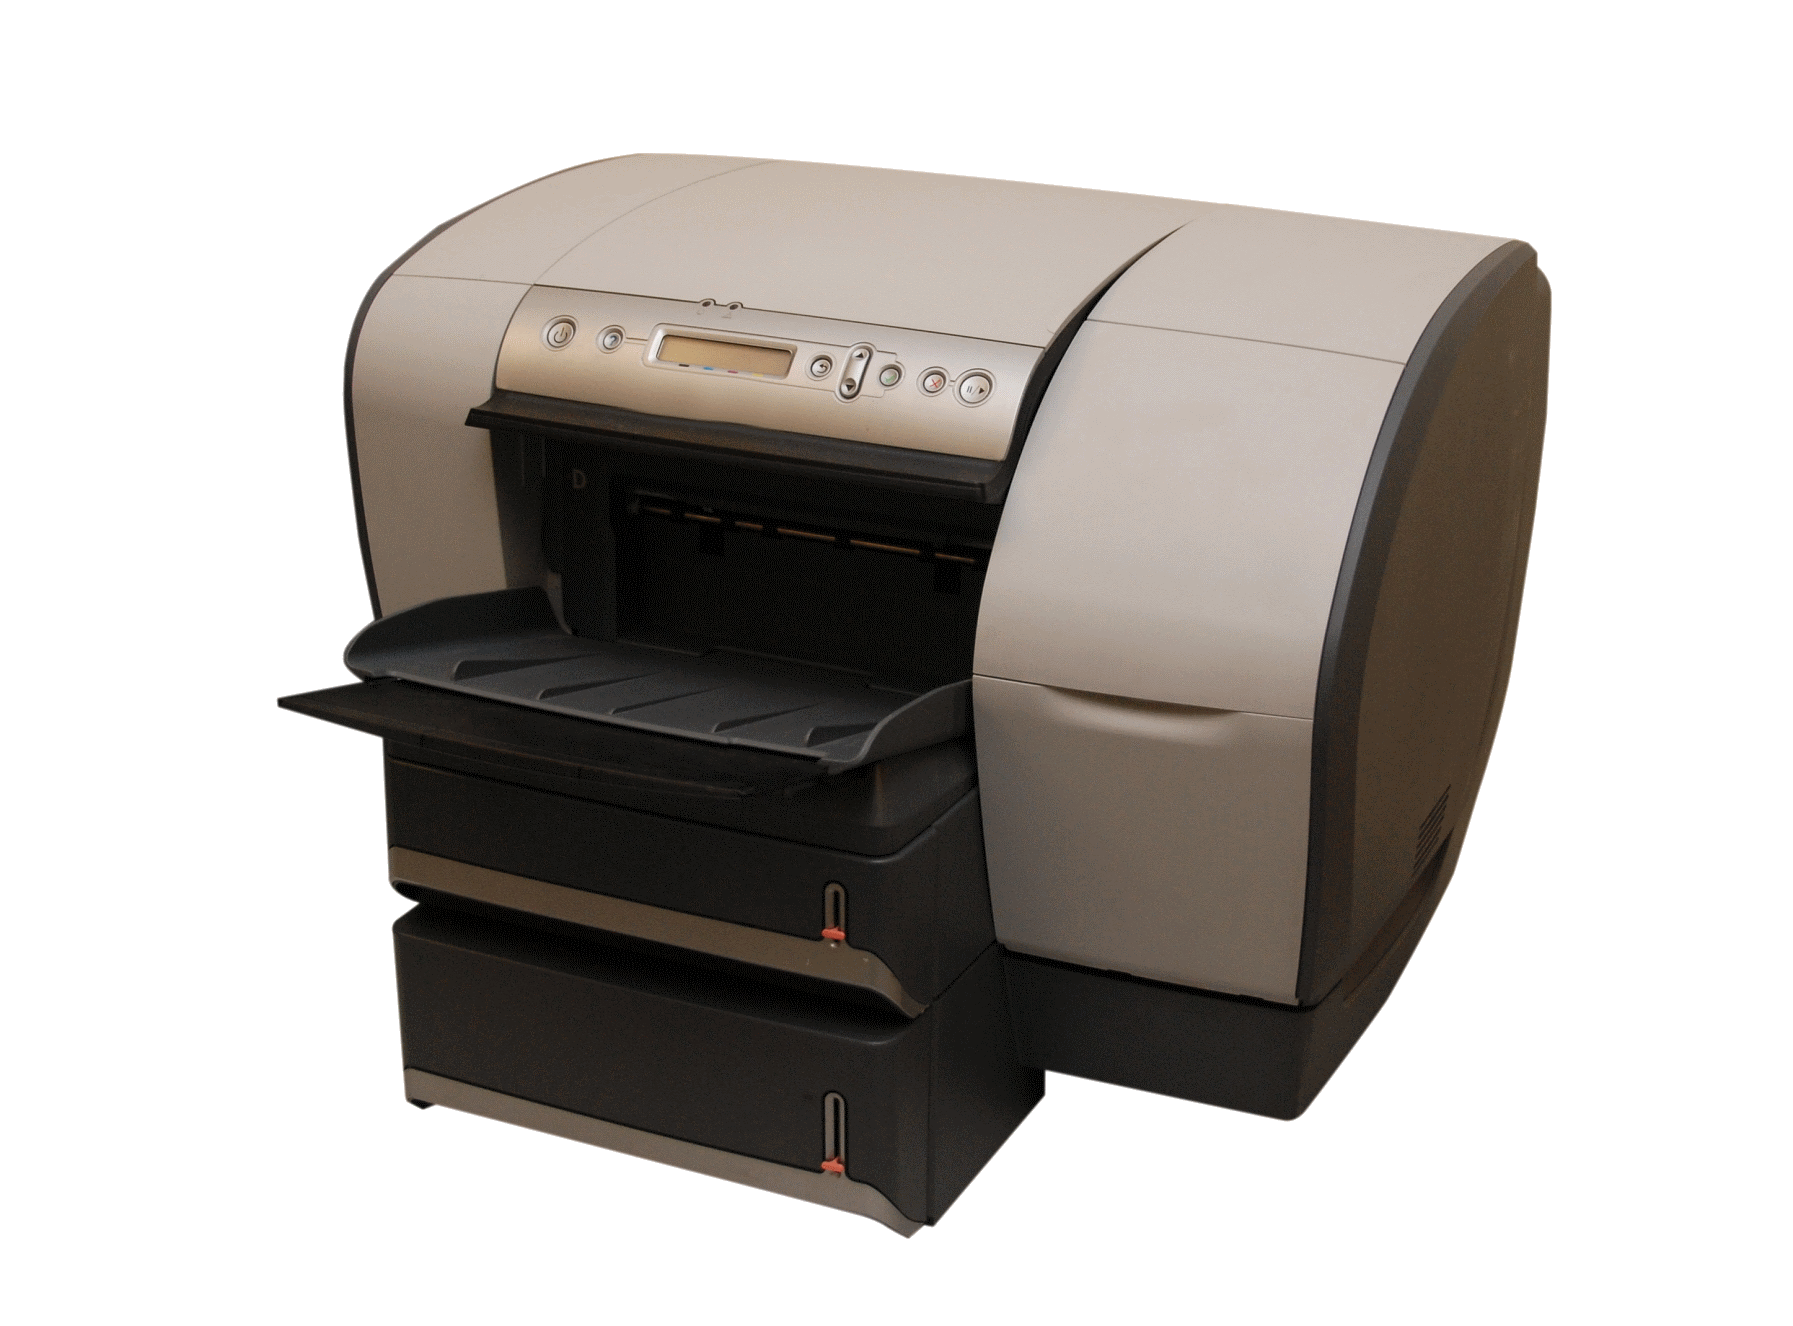 Network inventory of locally attached printers and scanners